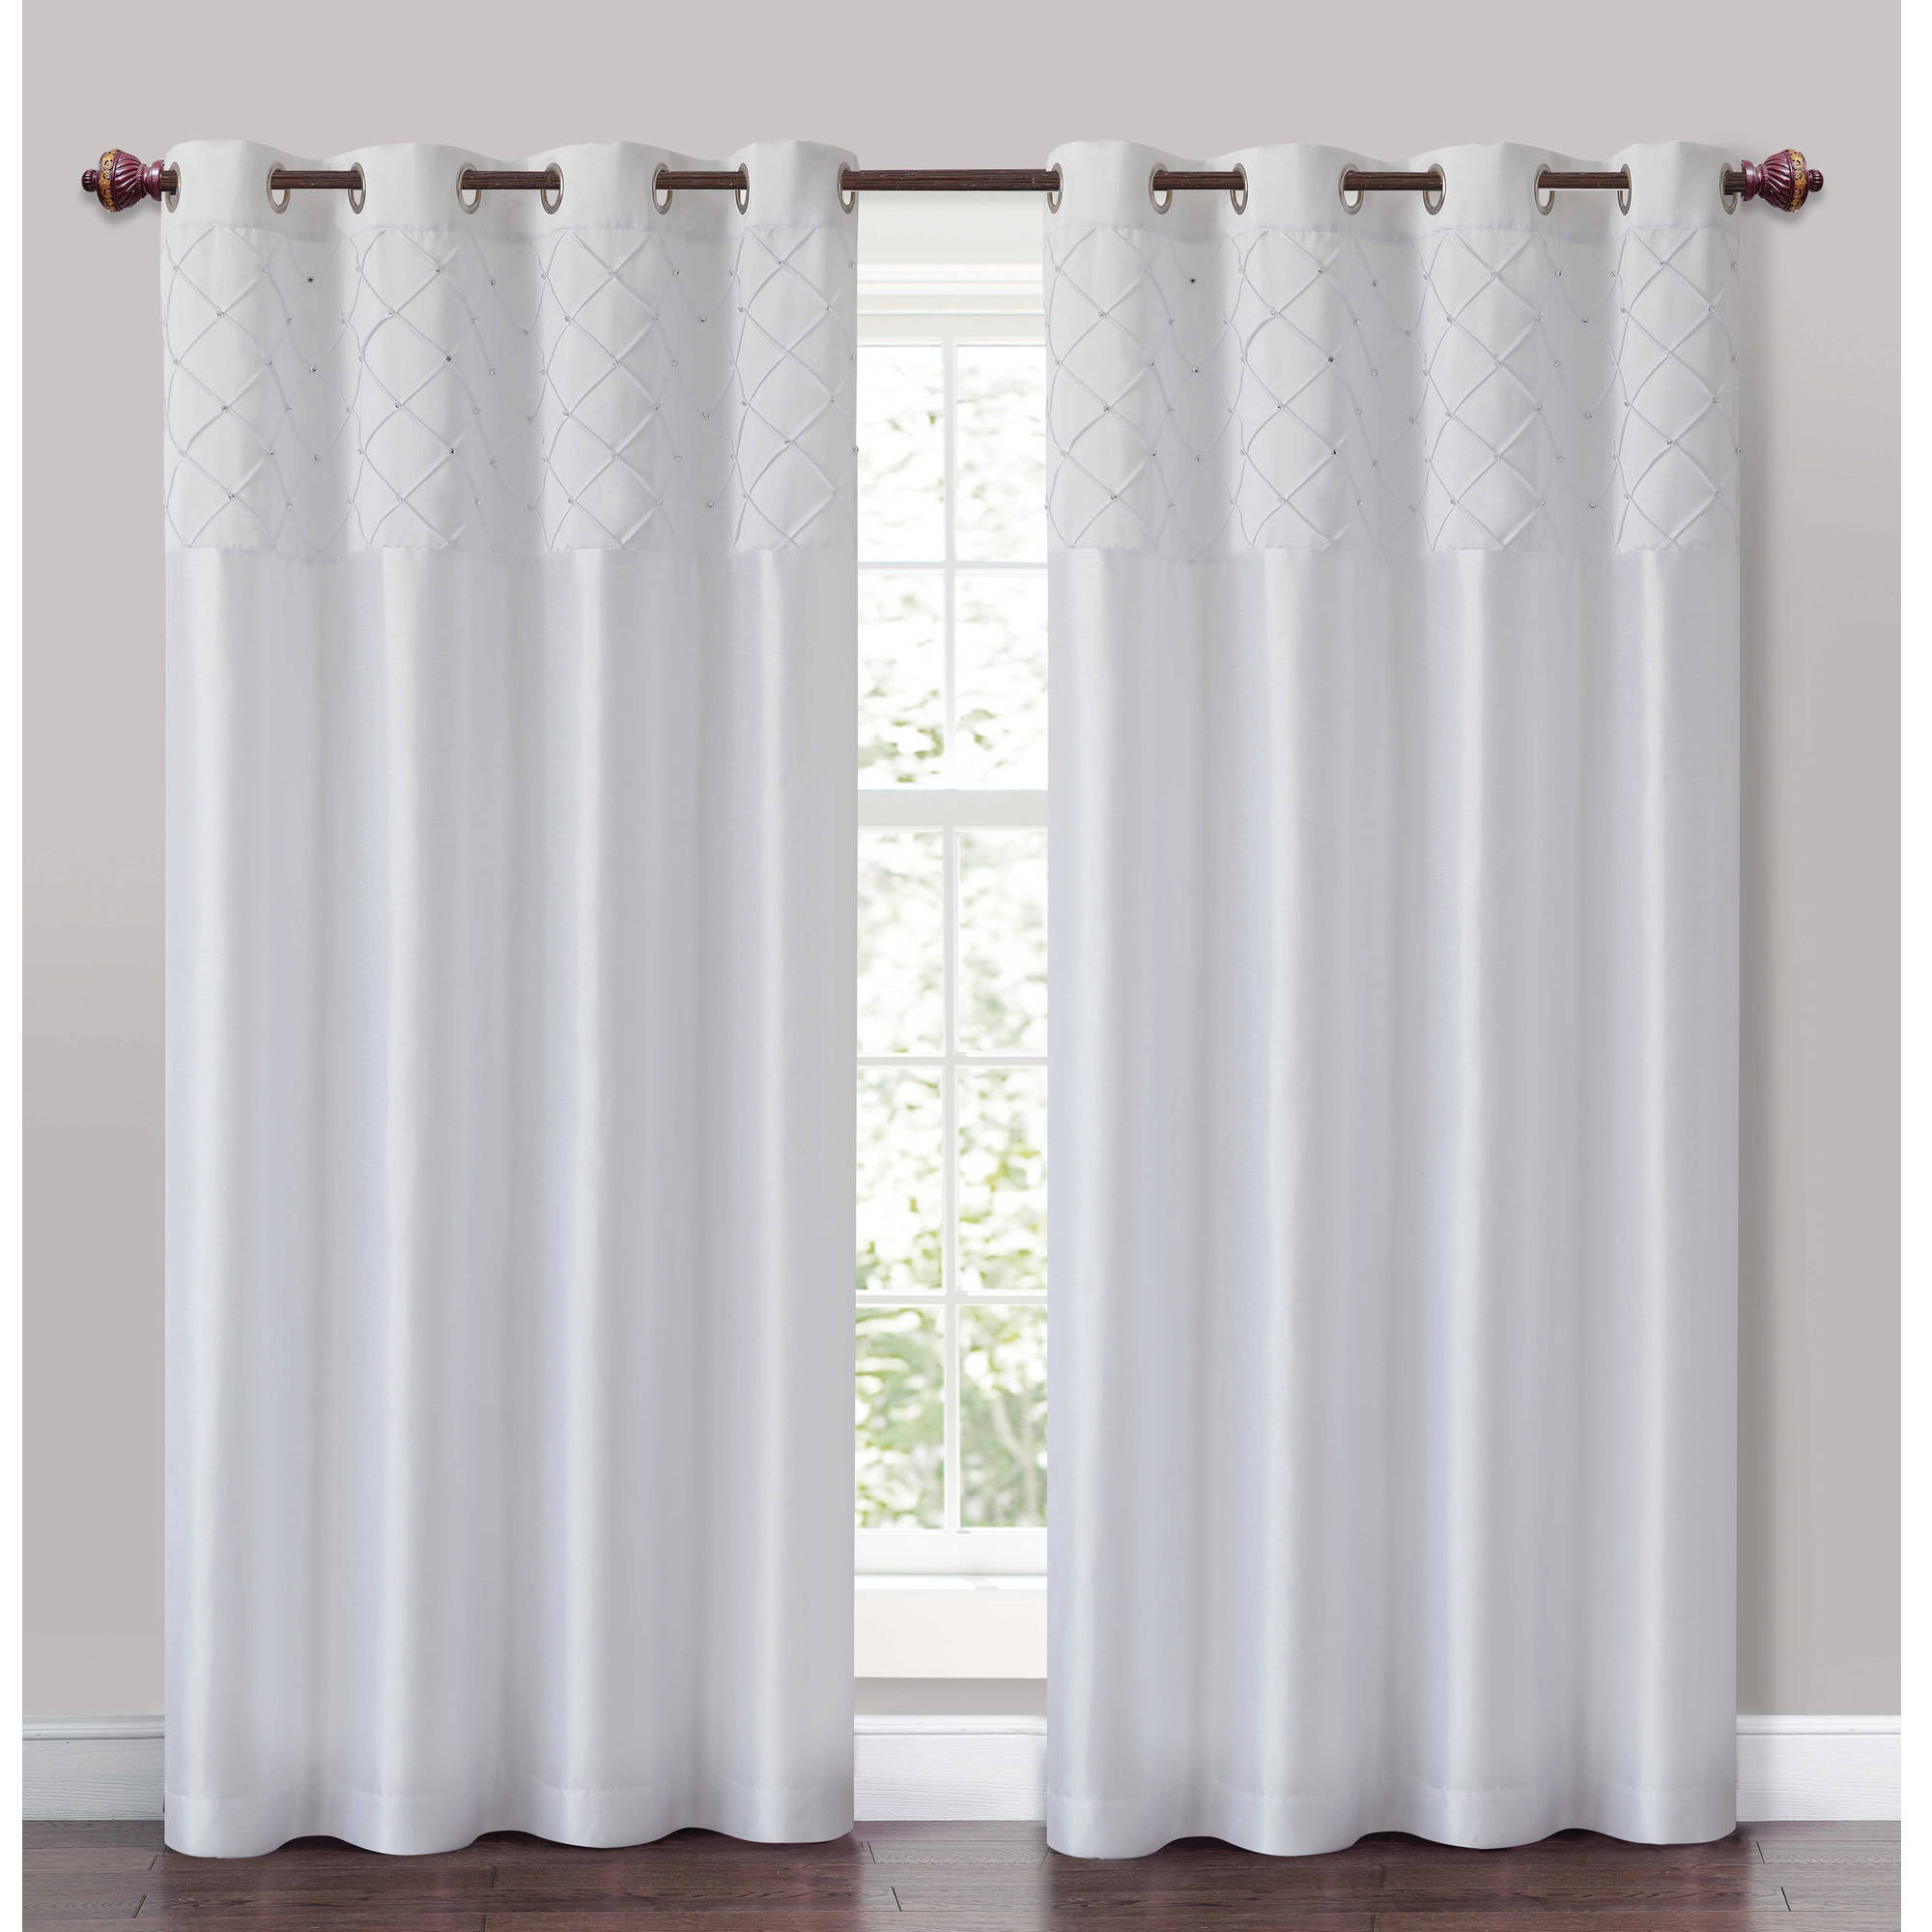 VCNY Home Roxanne Pintuck Grommet Curtain Panel